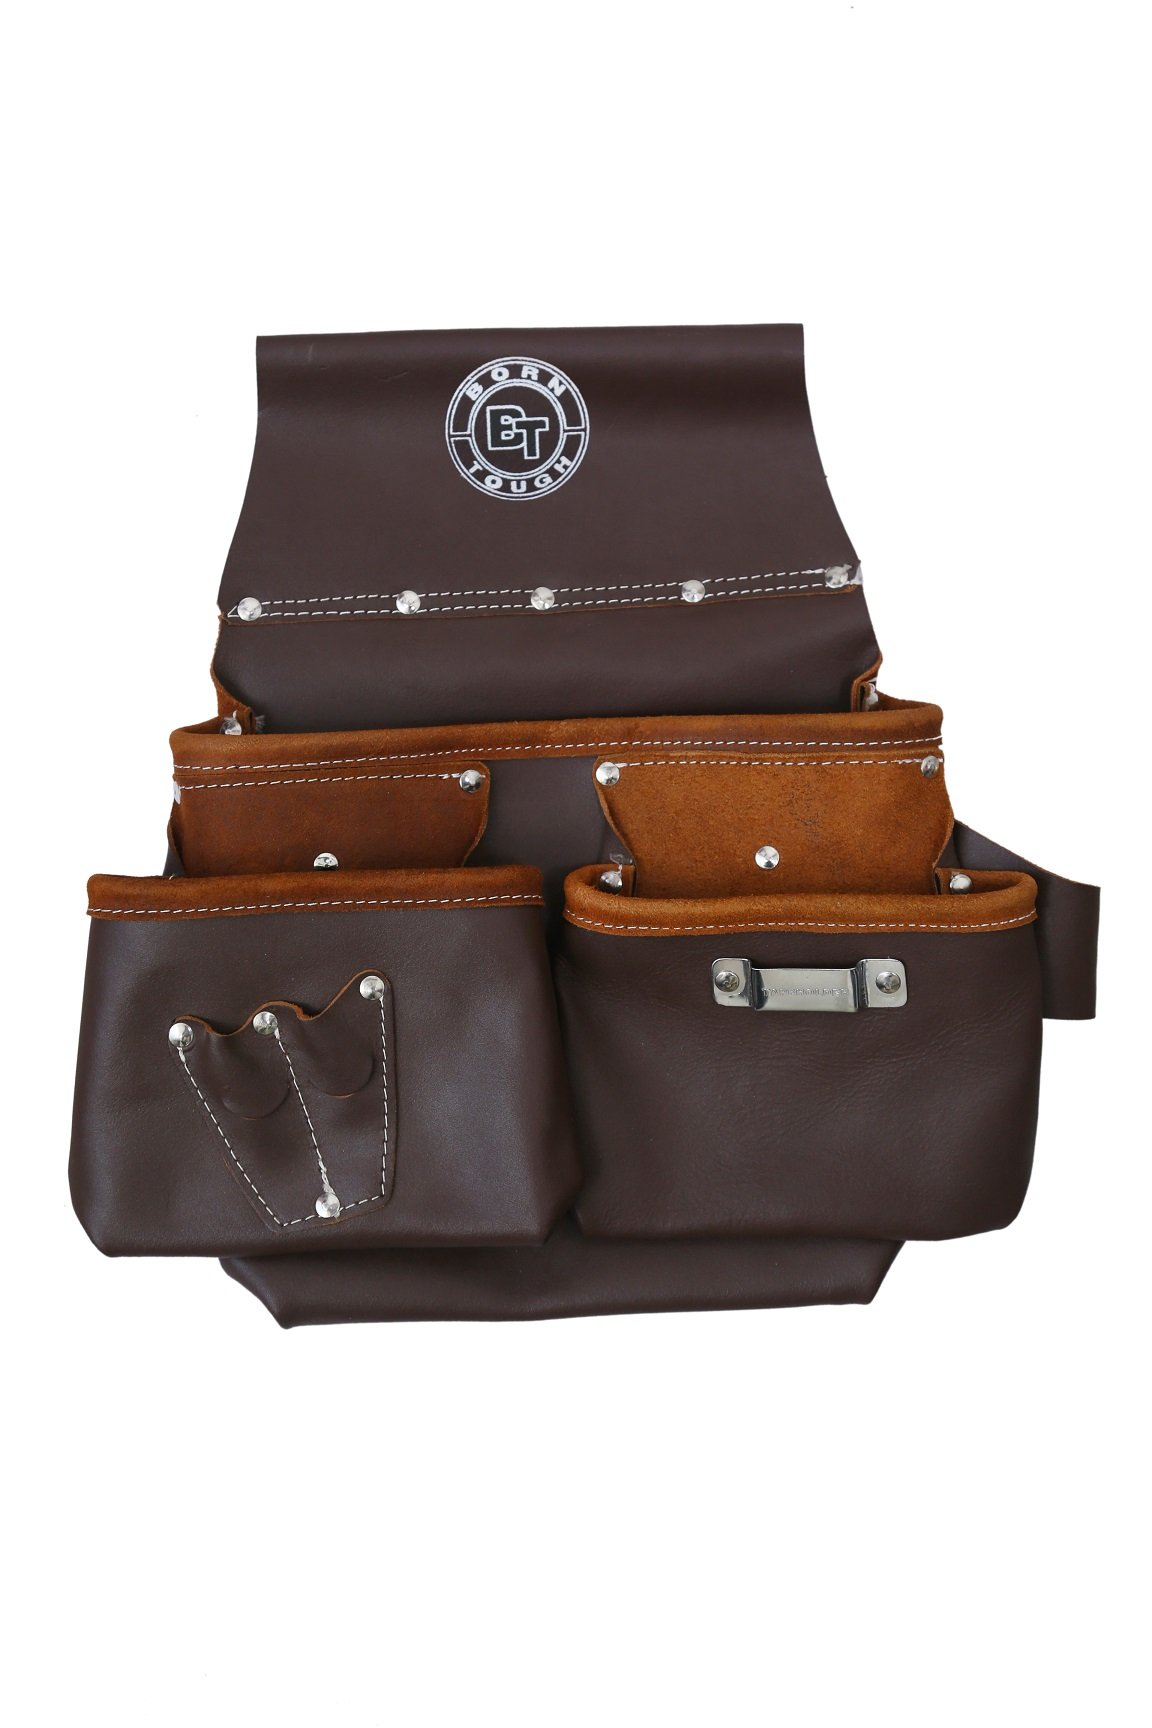 Multi Pocket Oil Tanned Leather Nail & Tool Pouch Bag